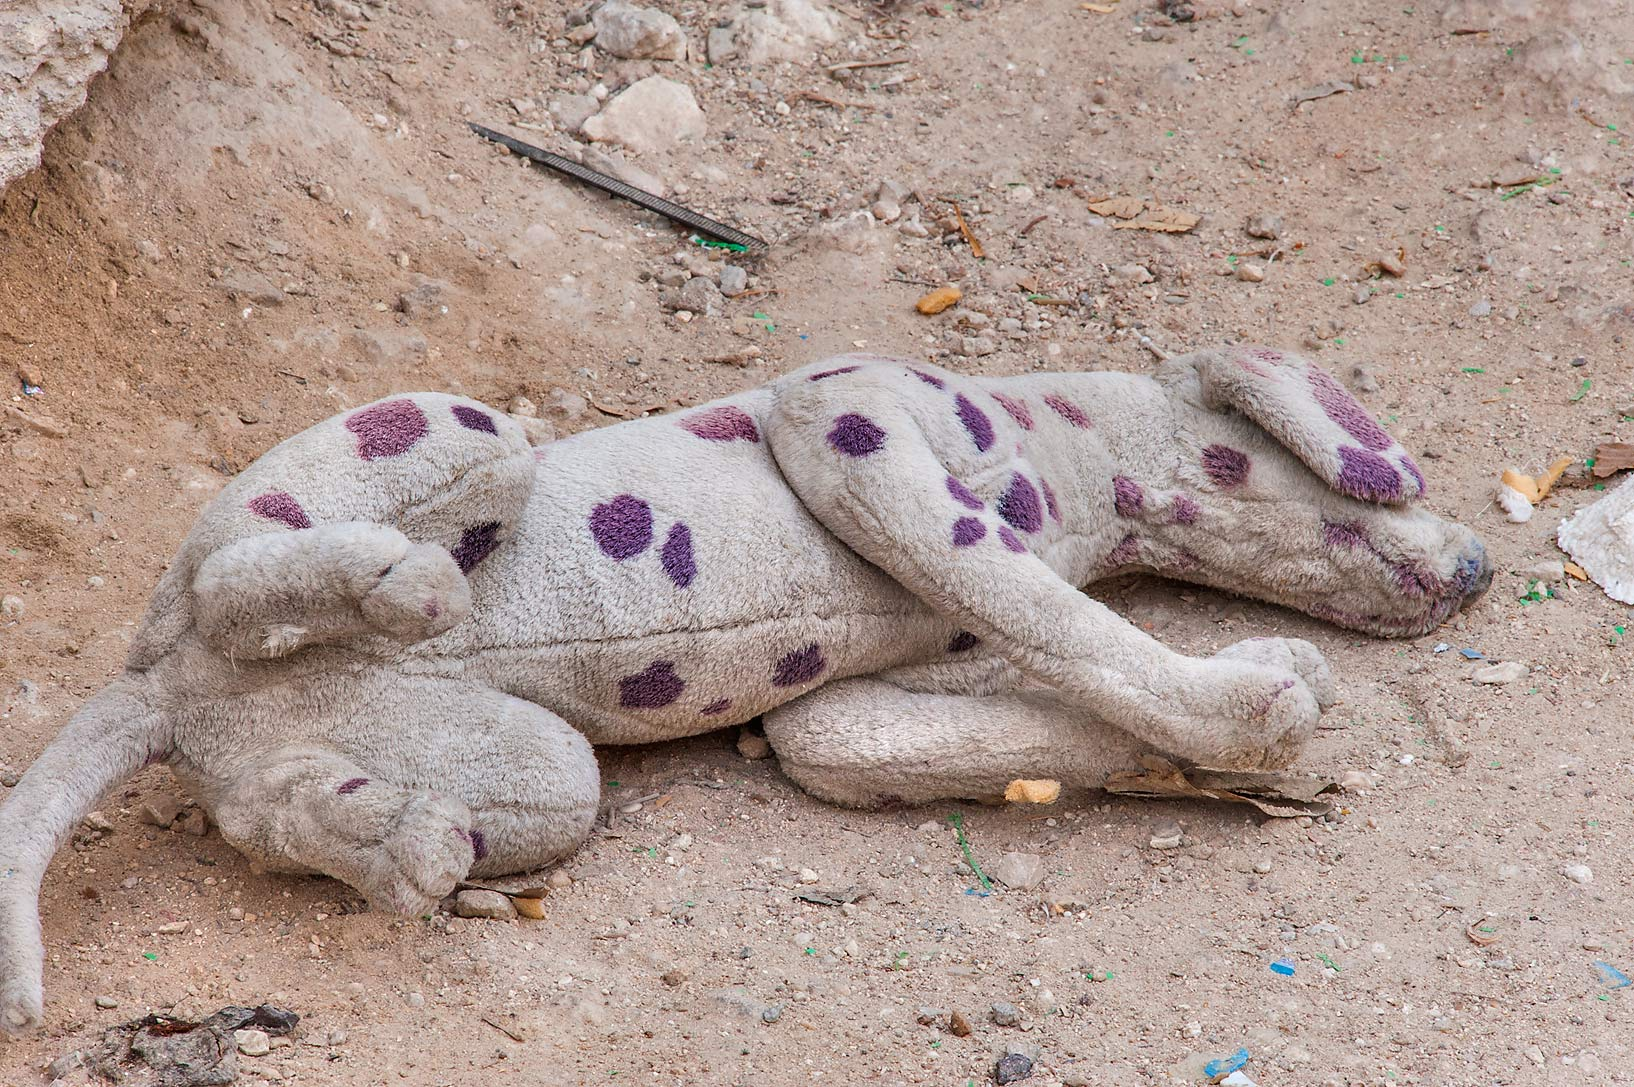 Thrown away Dalmatian soft toy (plush dog) in an...Musheirib (Msheireb) area. Doha, Qatar